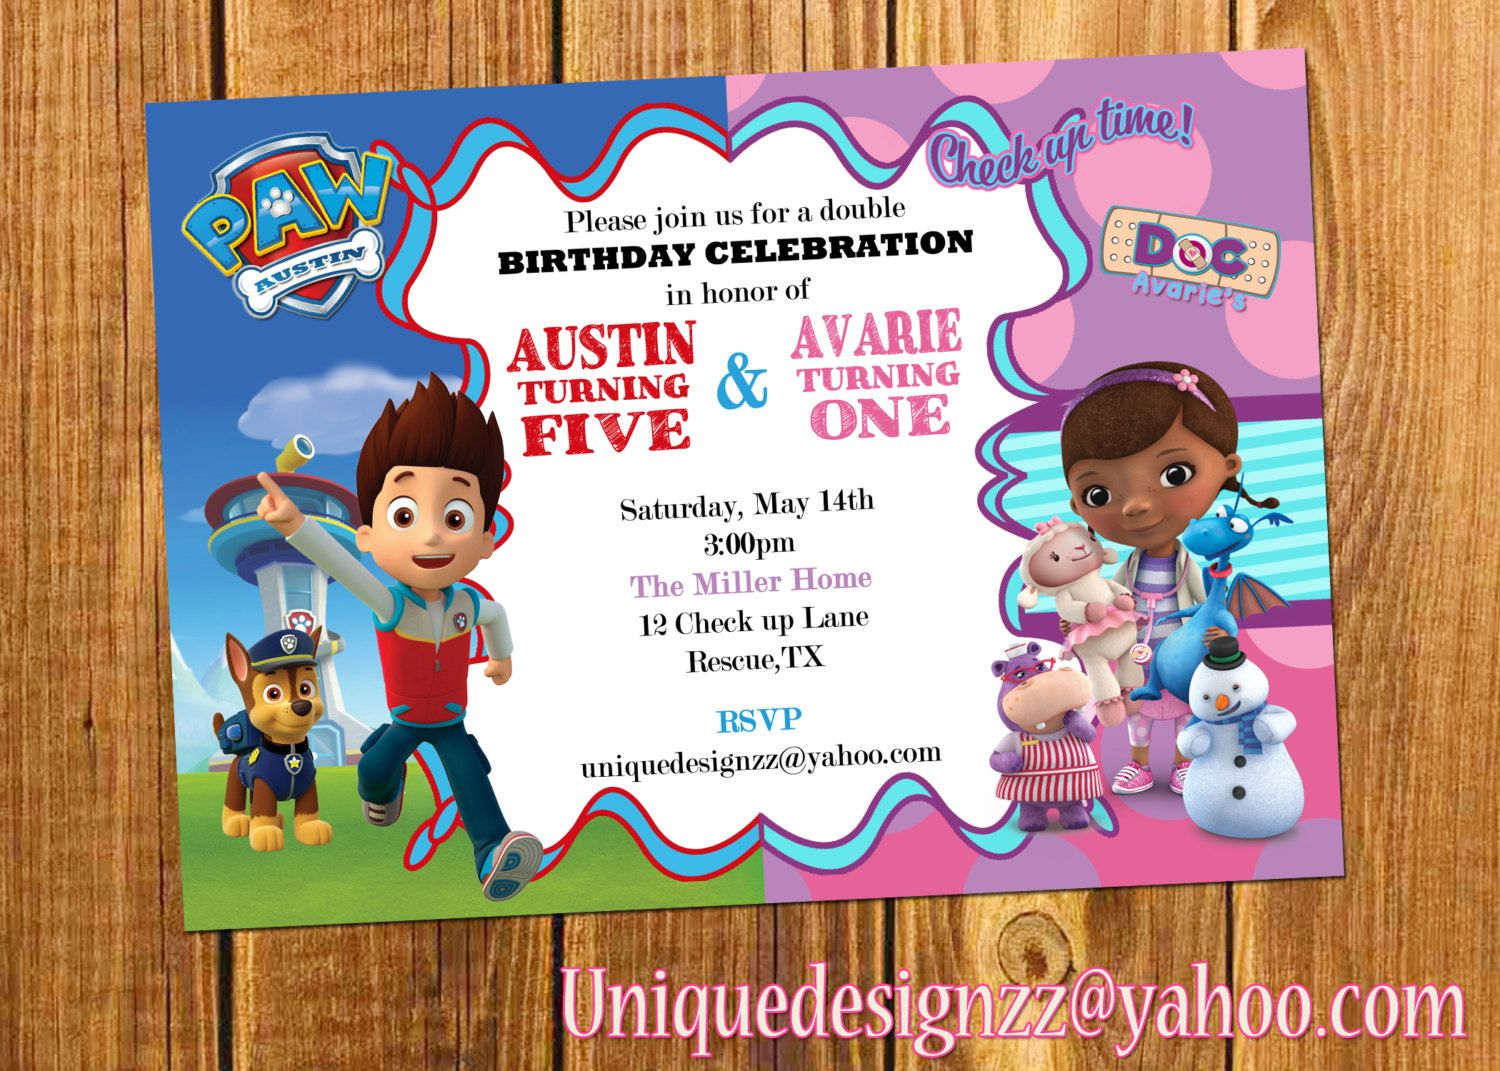 Sample Invitation Double Celebration. birthday invitation  double party invitations Free Invitation for You Paw Patrol and Doc Mcstuffins Double Birthday Party